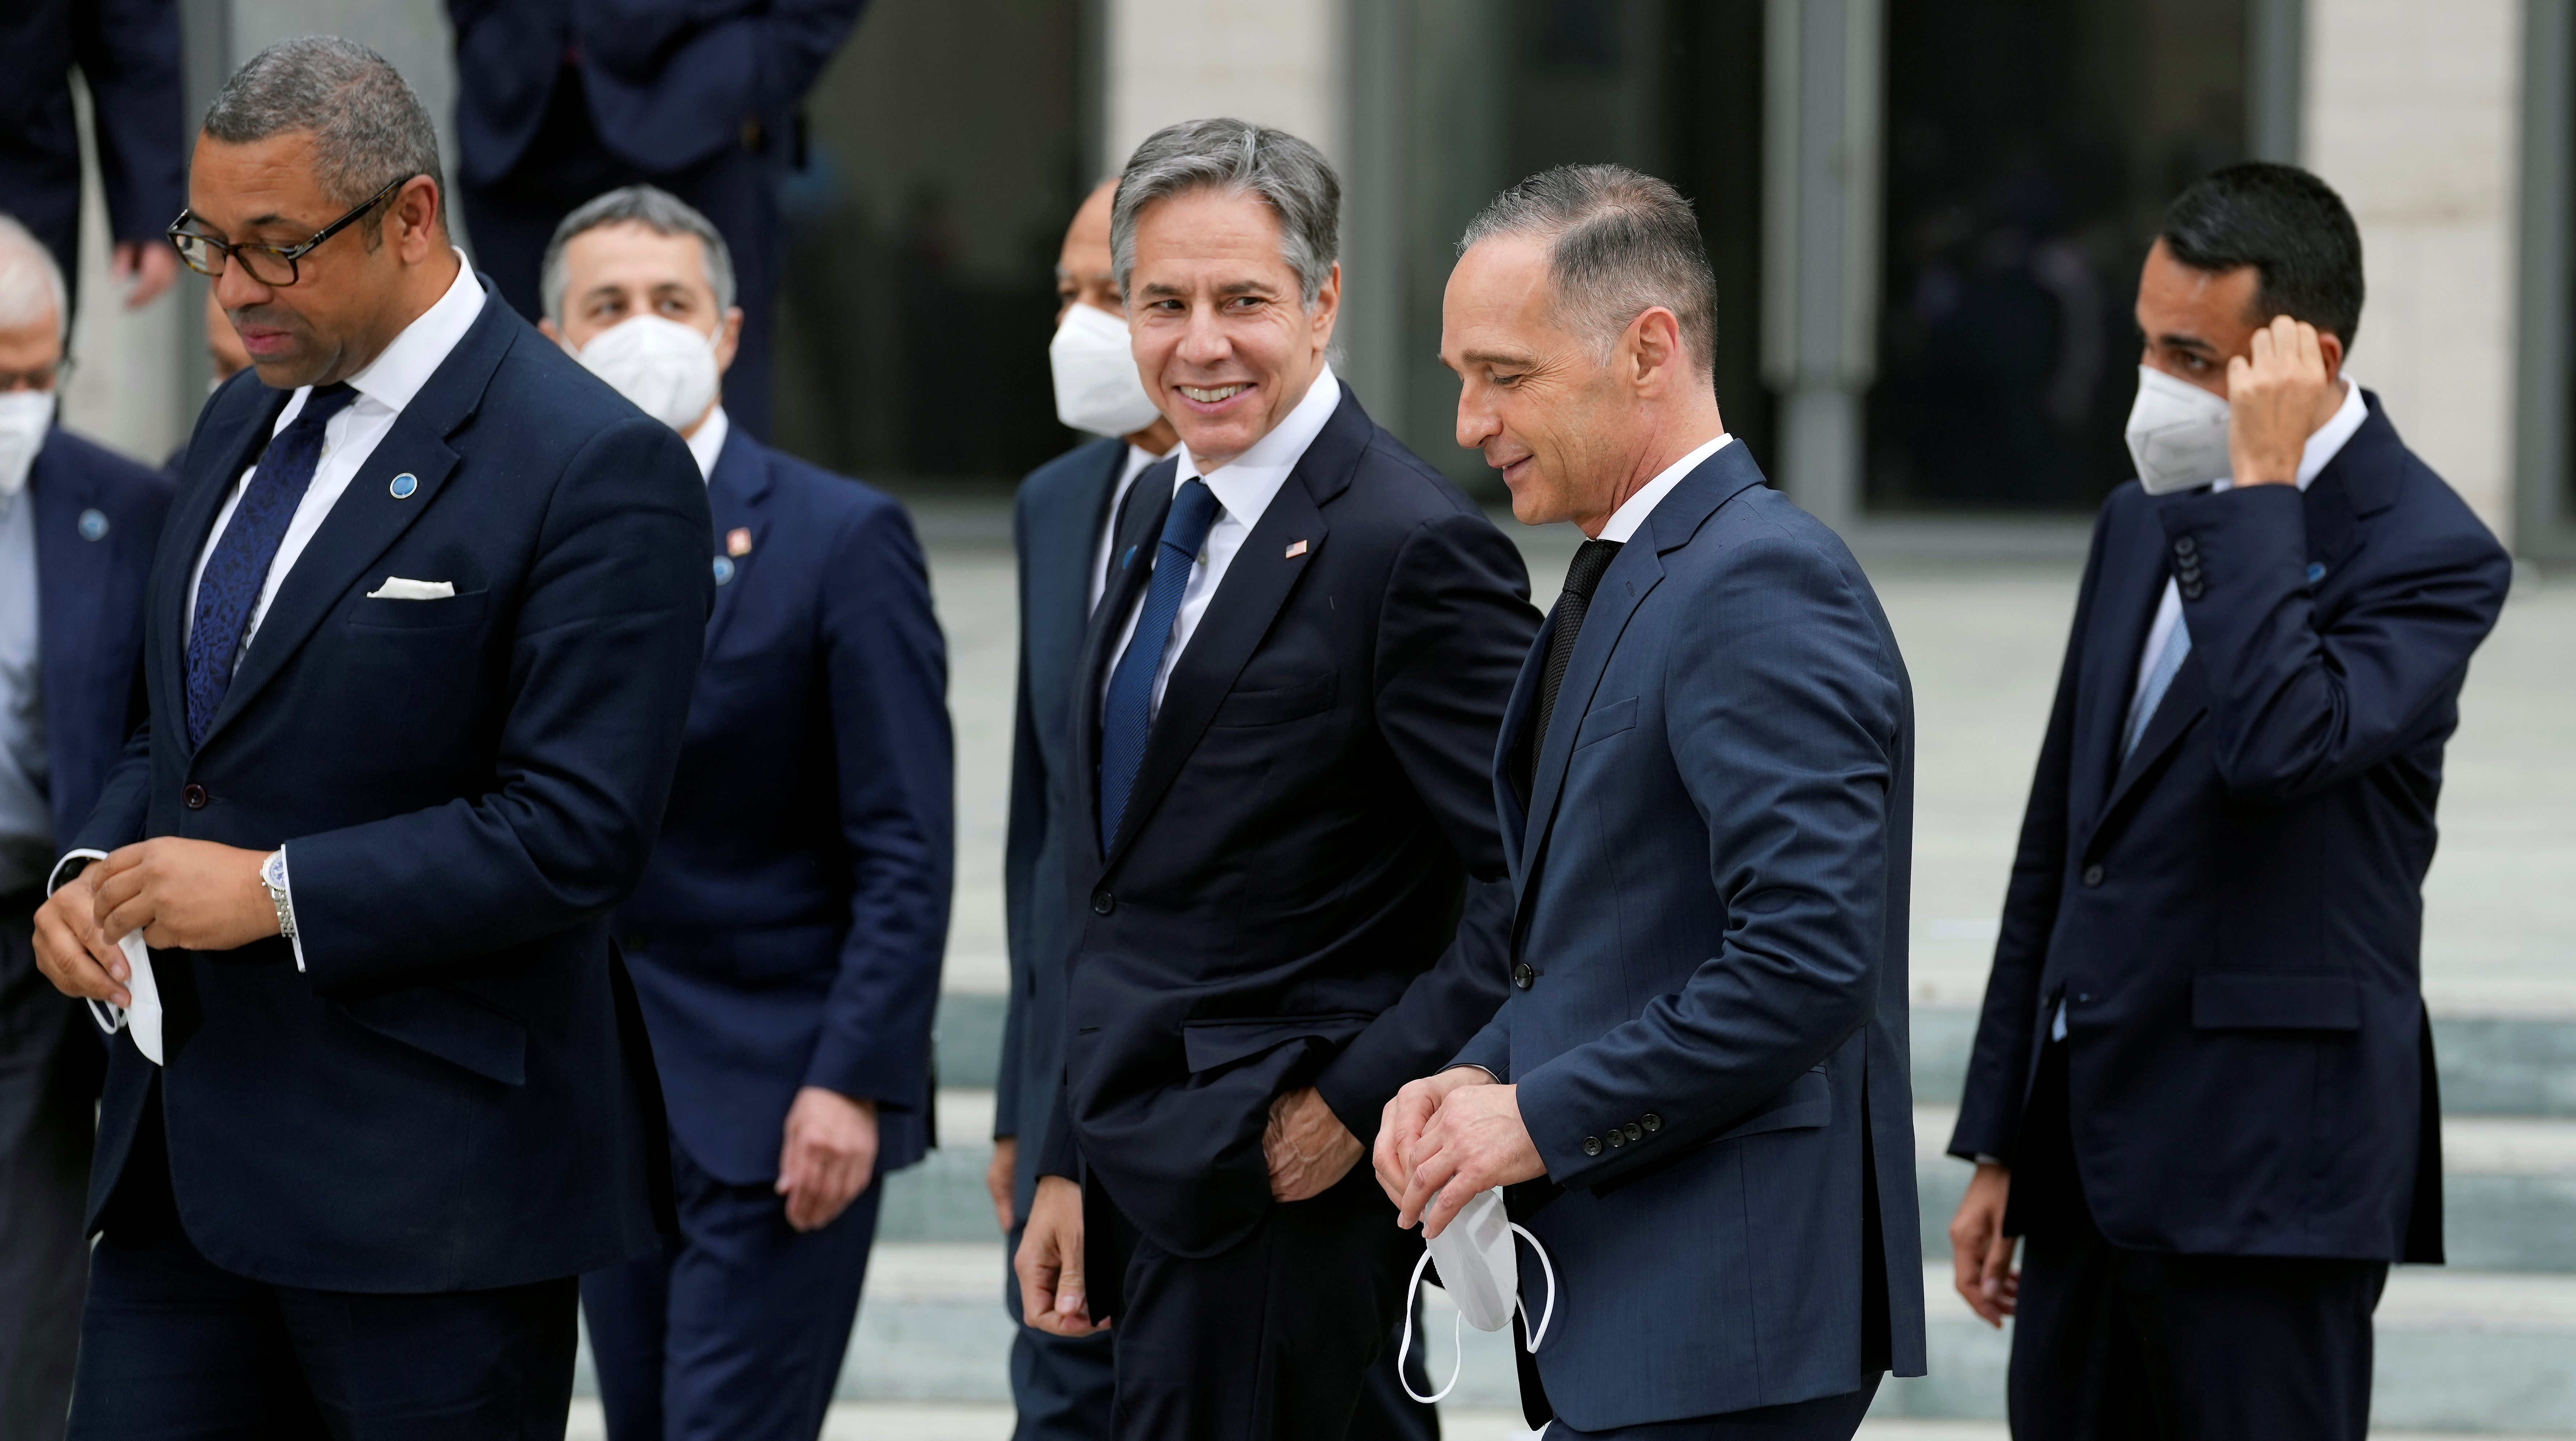 German Foreign Minister Heiko Maas and U.S. Secretary of State Antony Blinken talk after posing for a group photo during the 'Second Berlin Conference on Libya' at the foreign office in Berlin, Germany, June 23, 2021. Michael Sohn/Pool via REUTERS